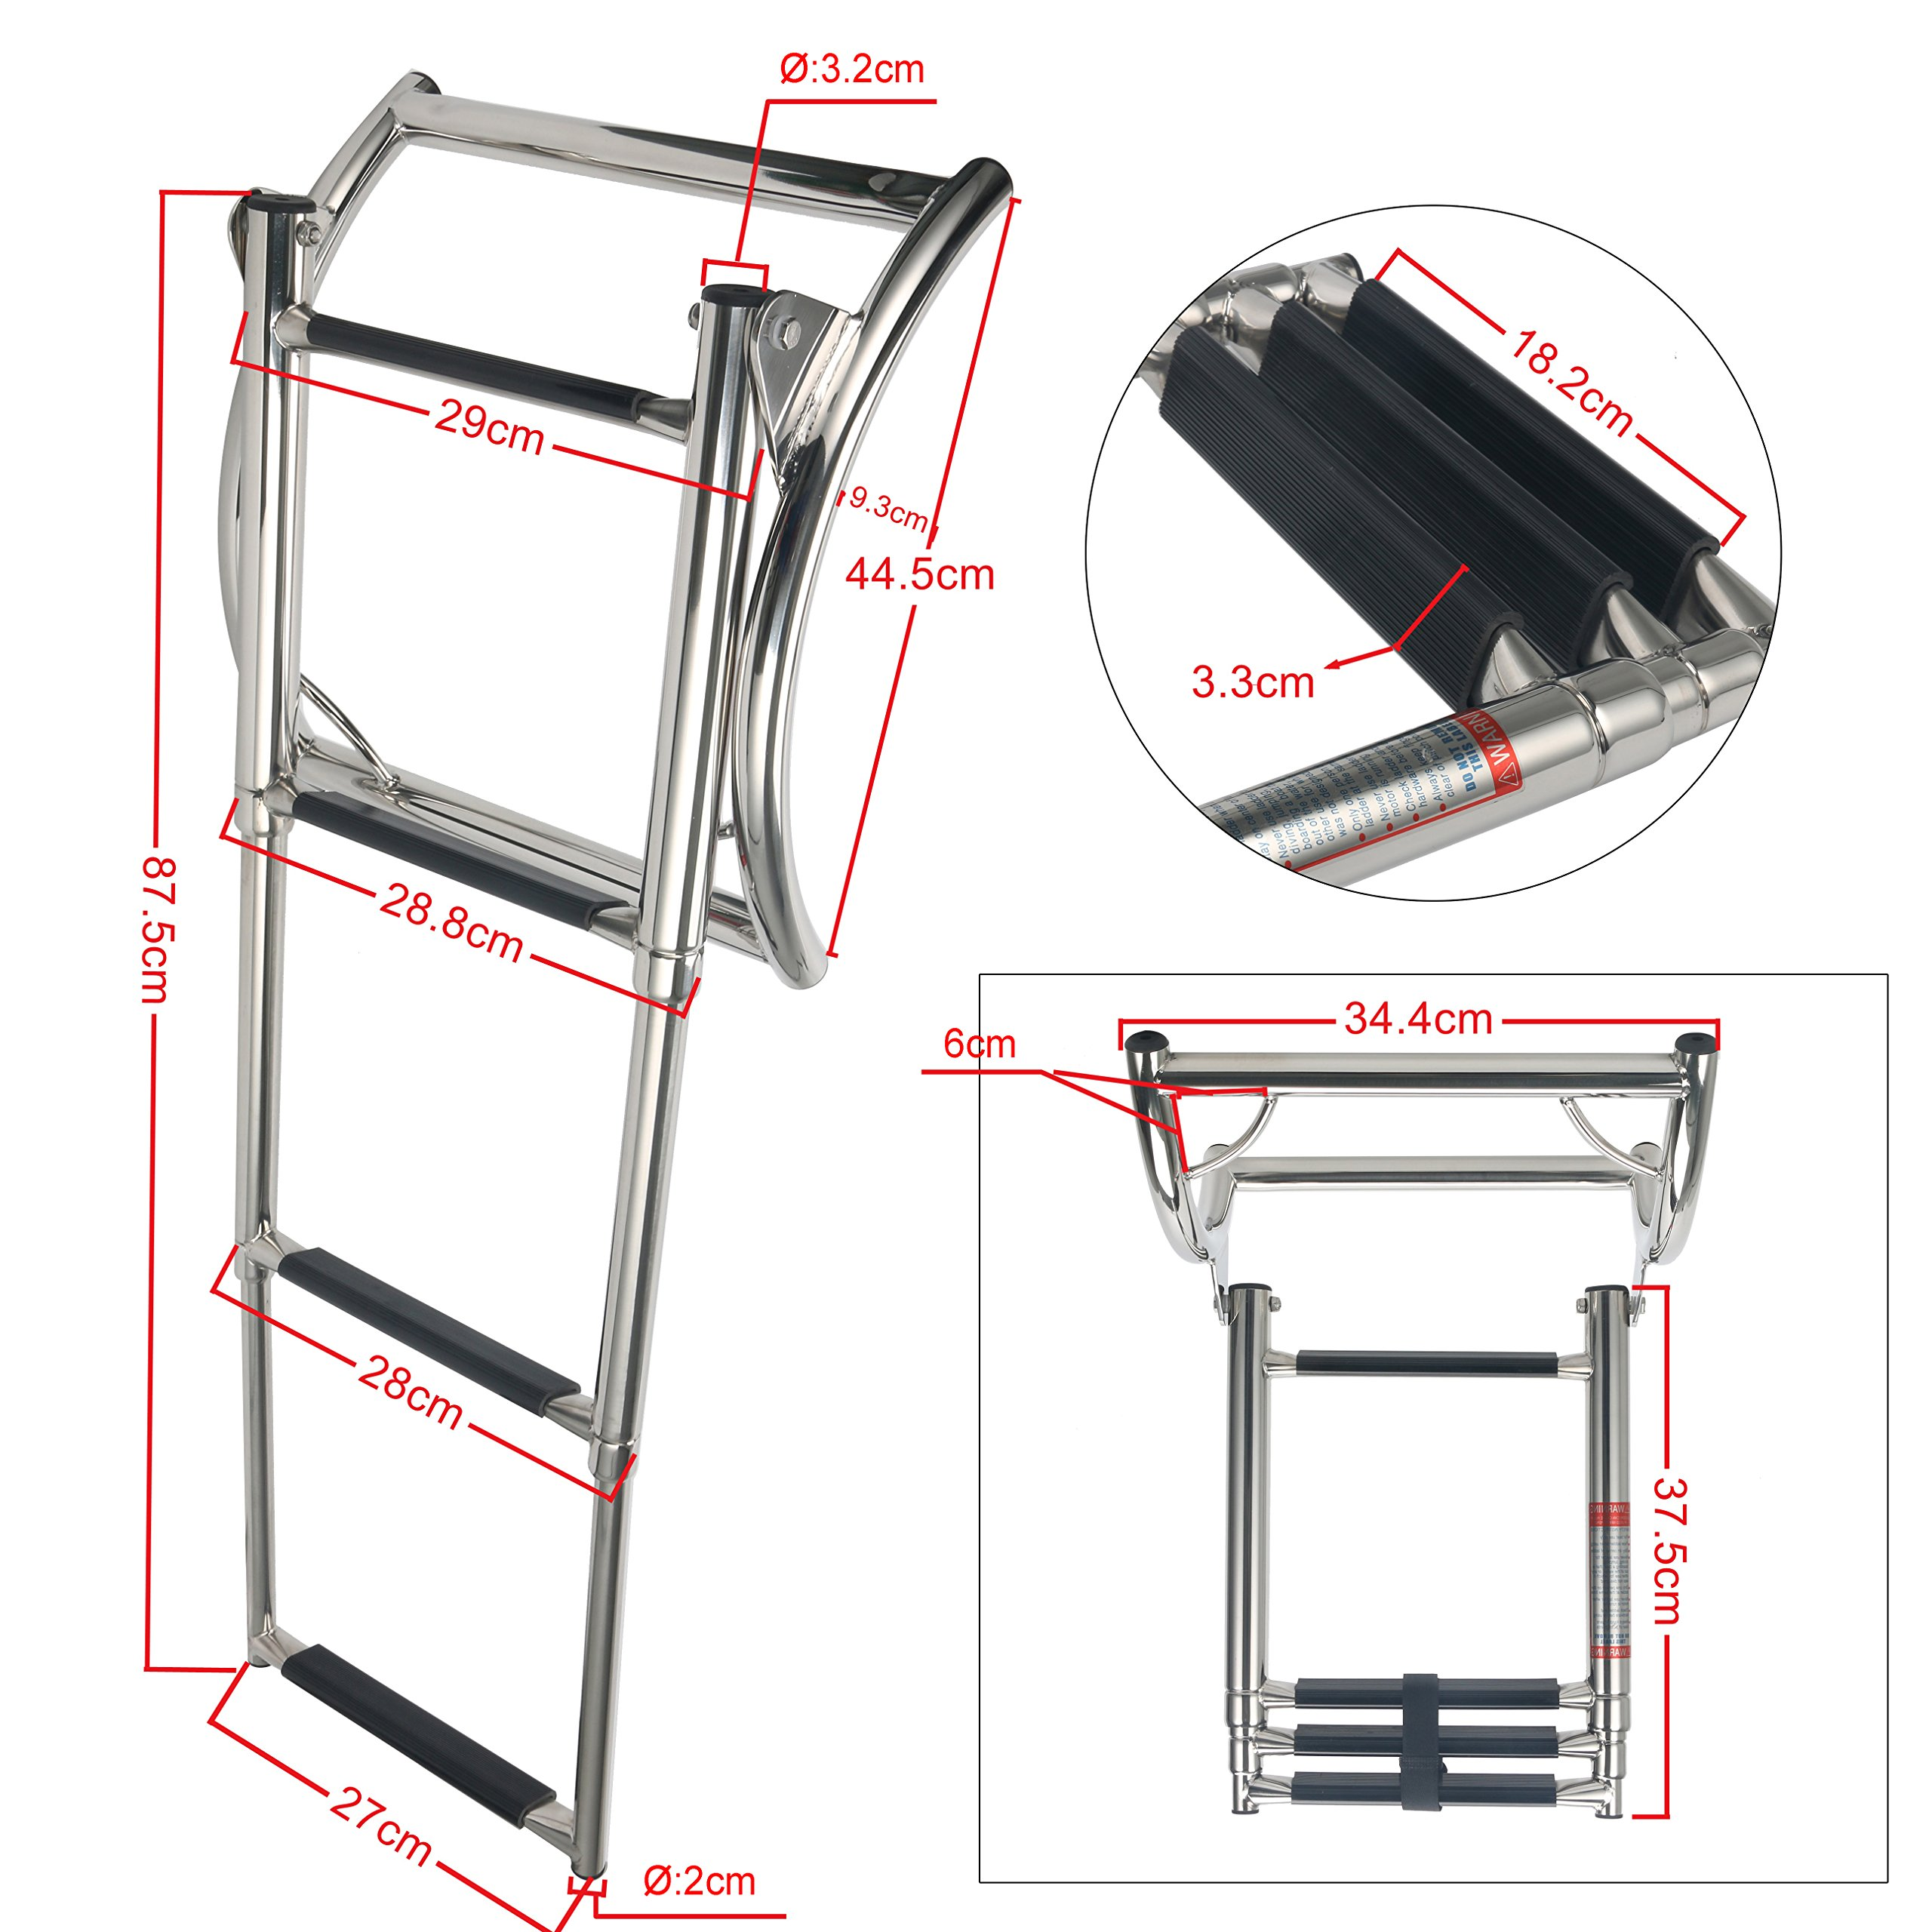 Amarine-made 3 Step Rib Ladder Stainless Steel Telescoping Swim Step Rubber Boat Ladder